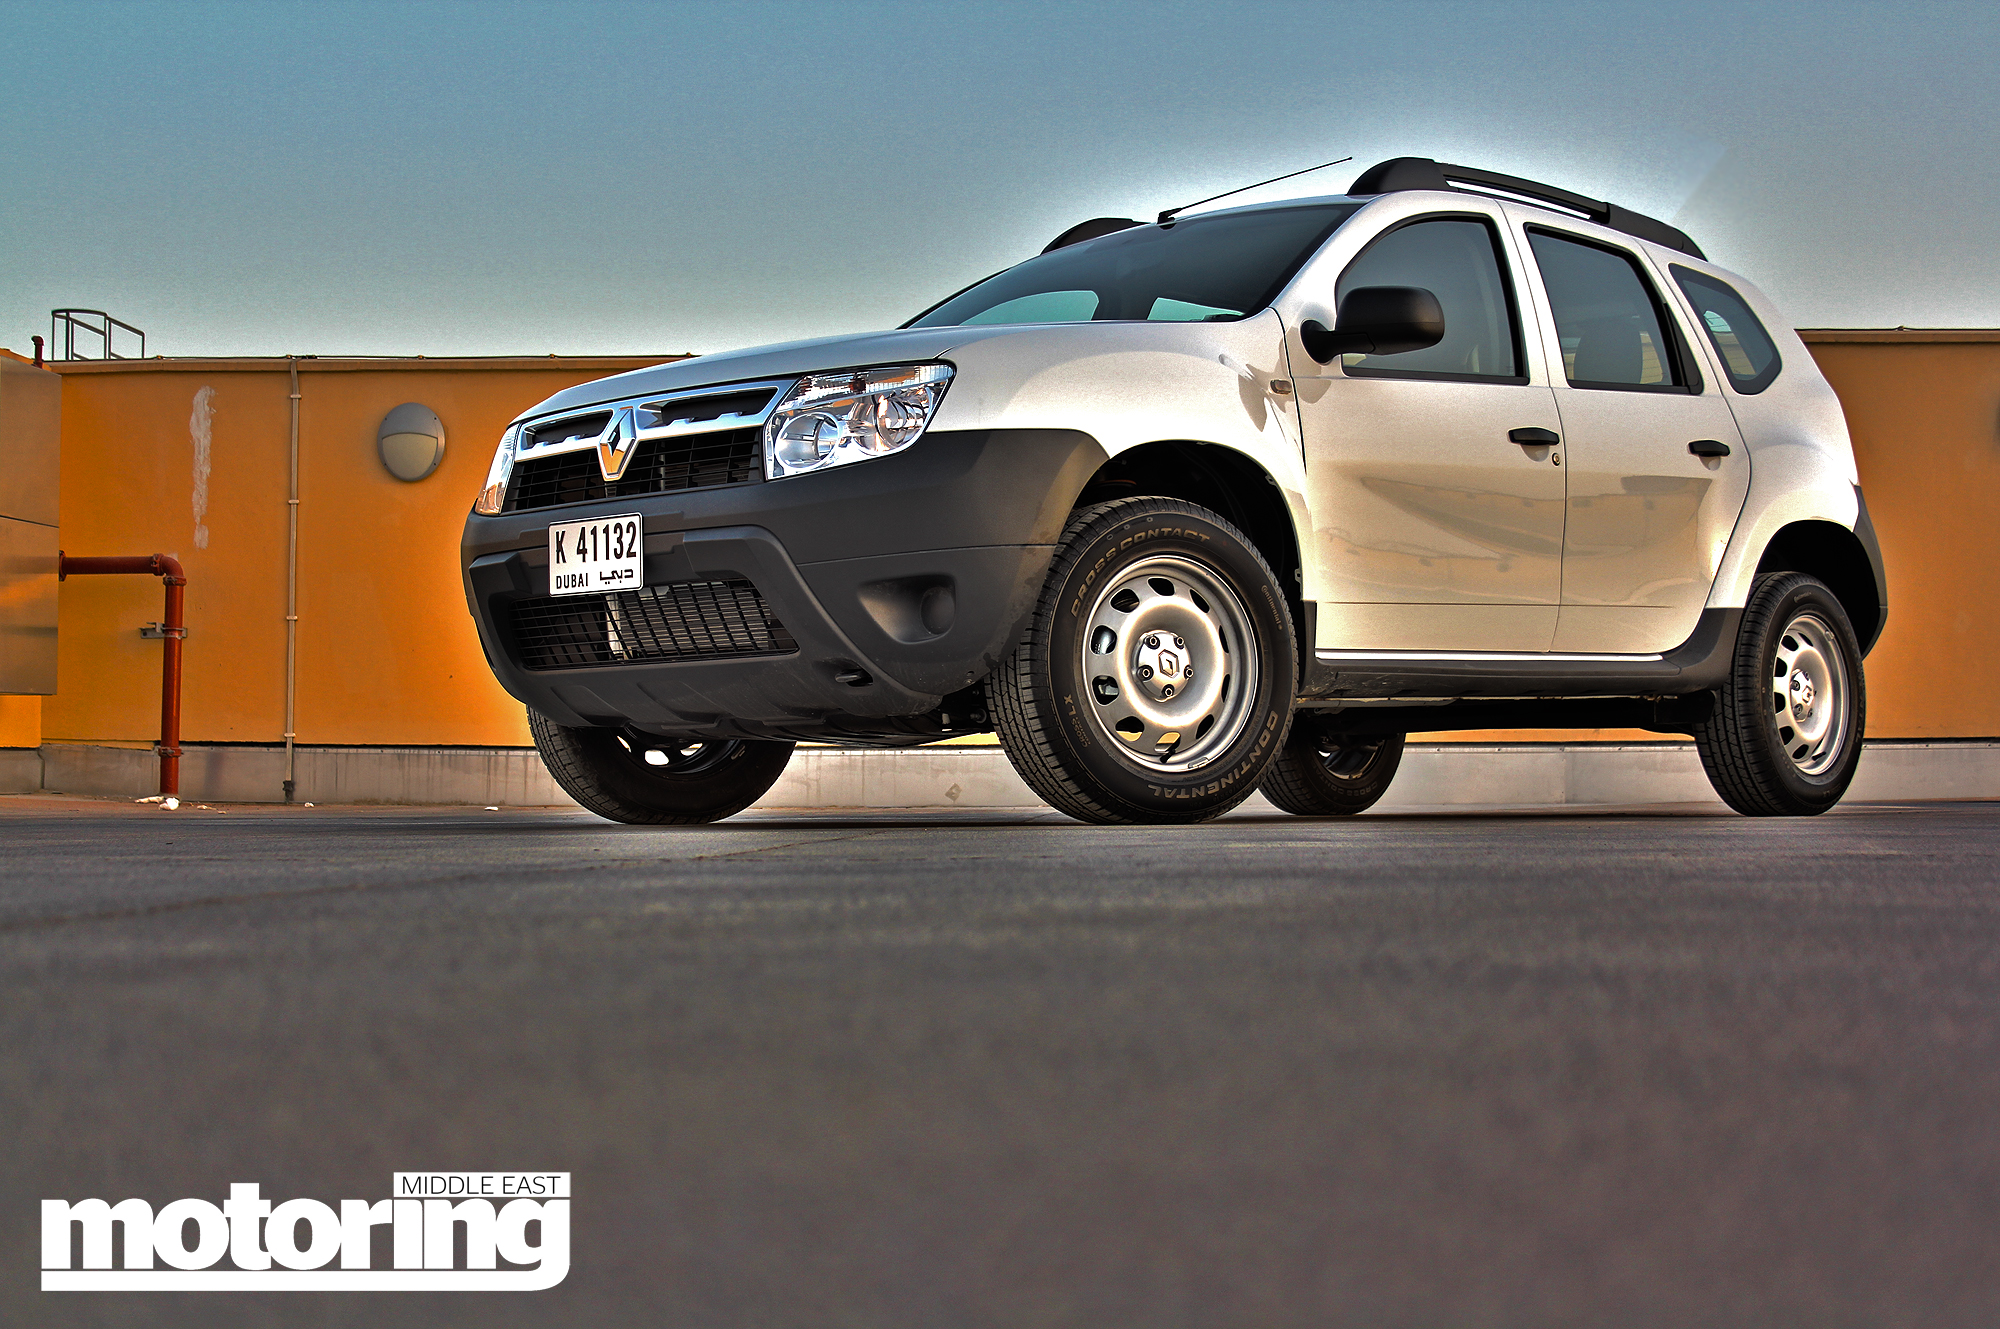 2012 renault duster 4x2 pe review motoring middle east car news reviews a. Black Bedroom Furniture Sets. Home Design Ideas